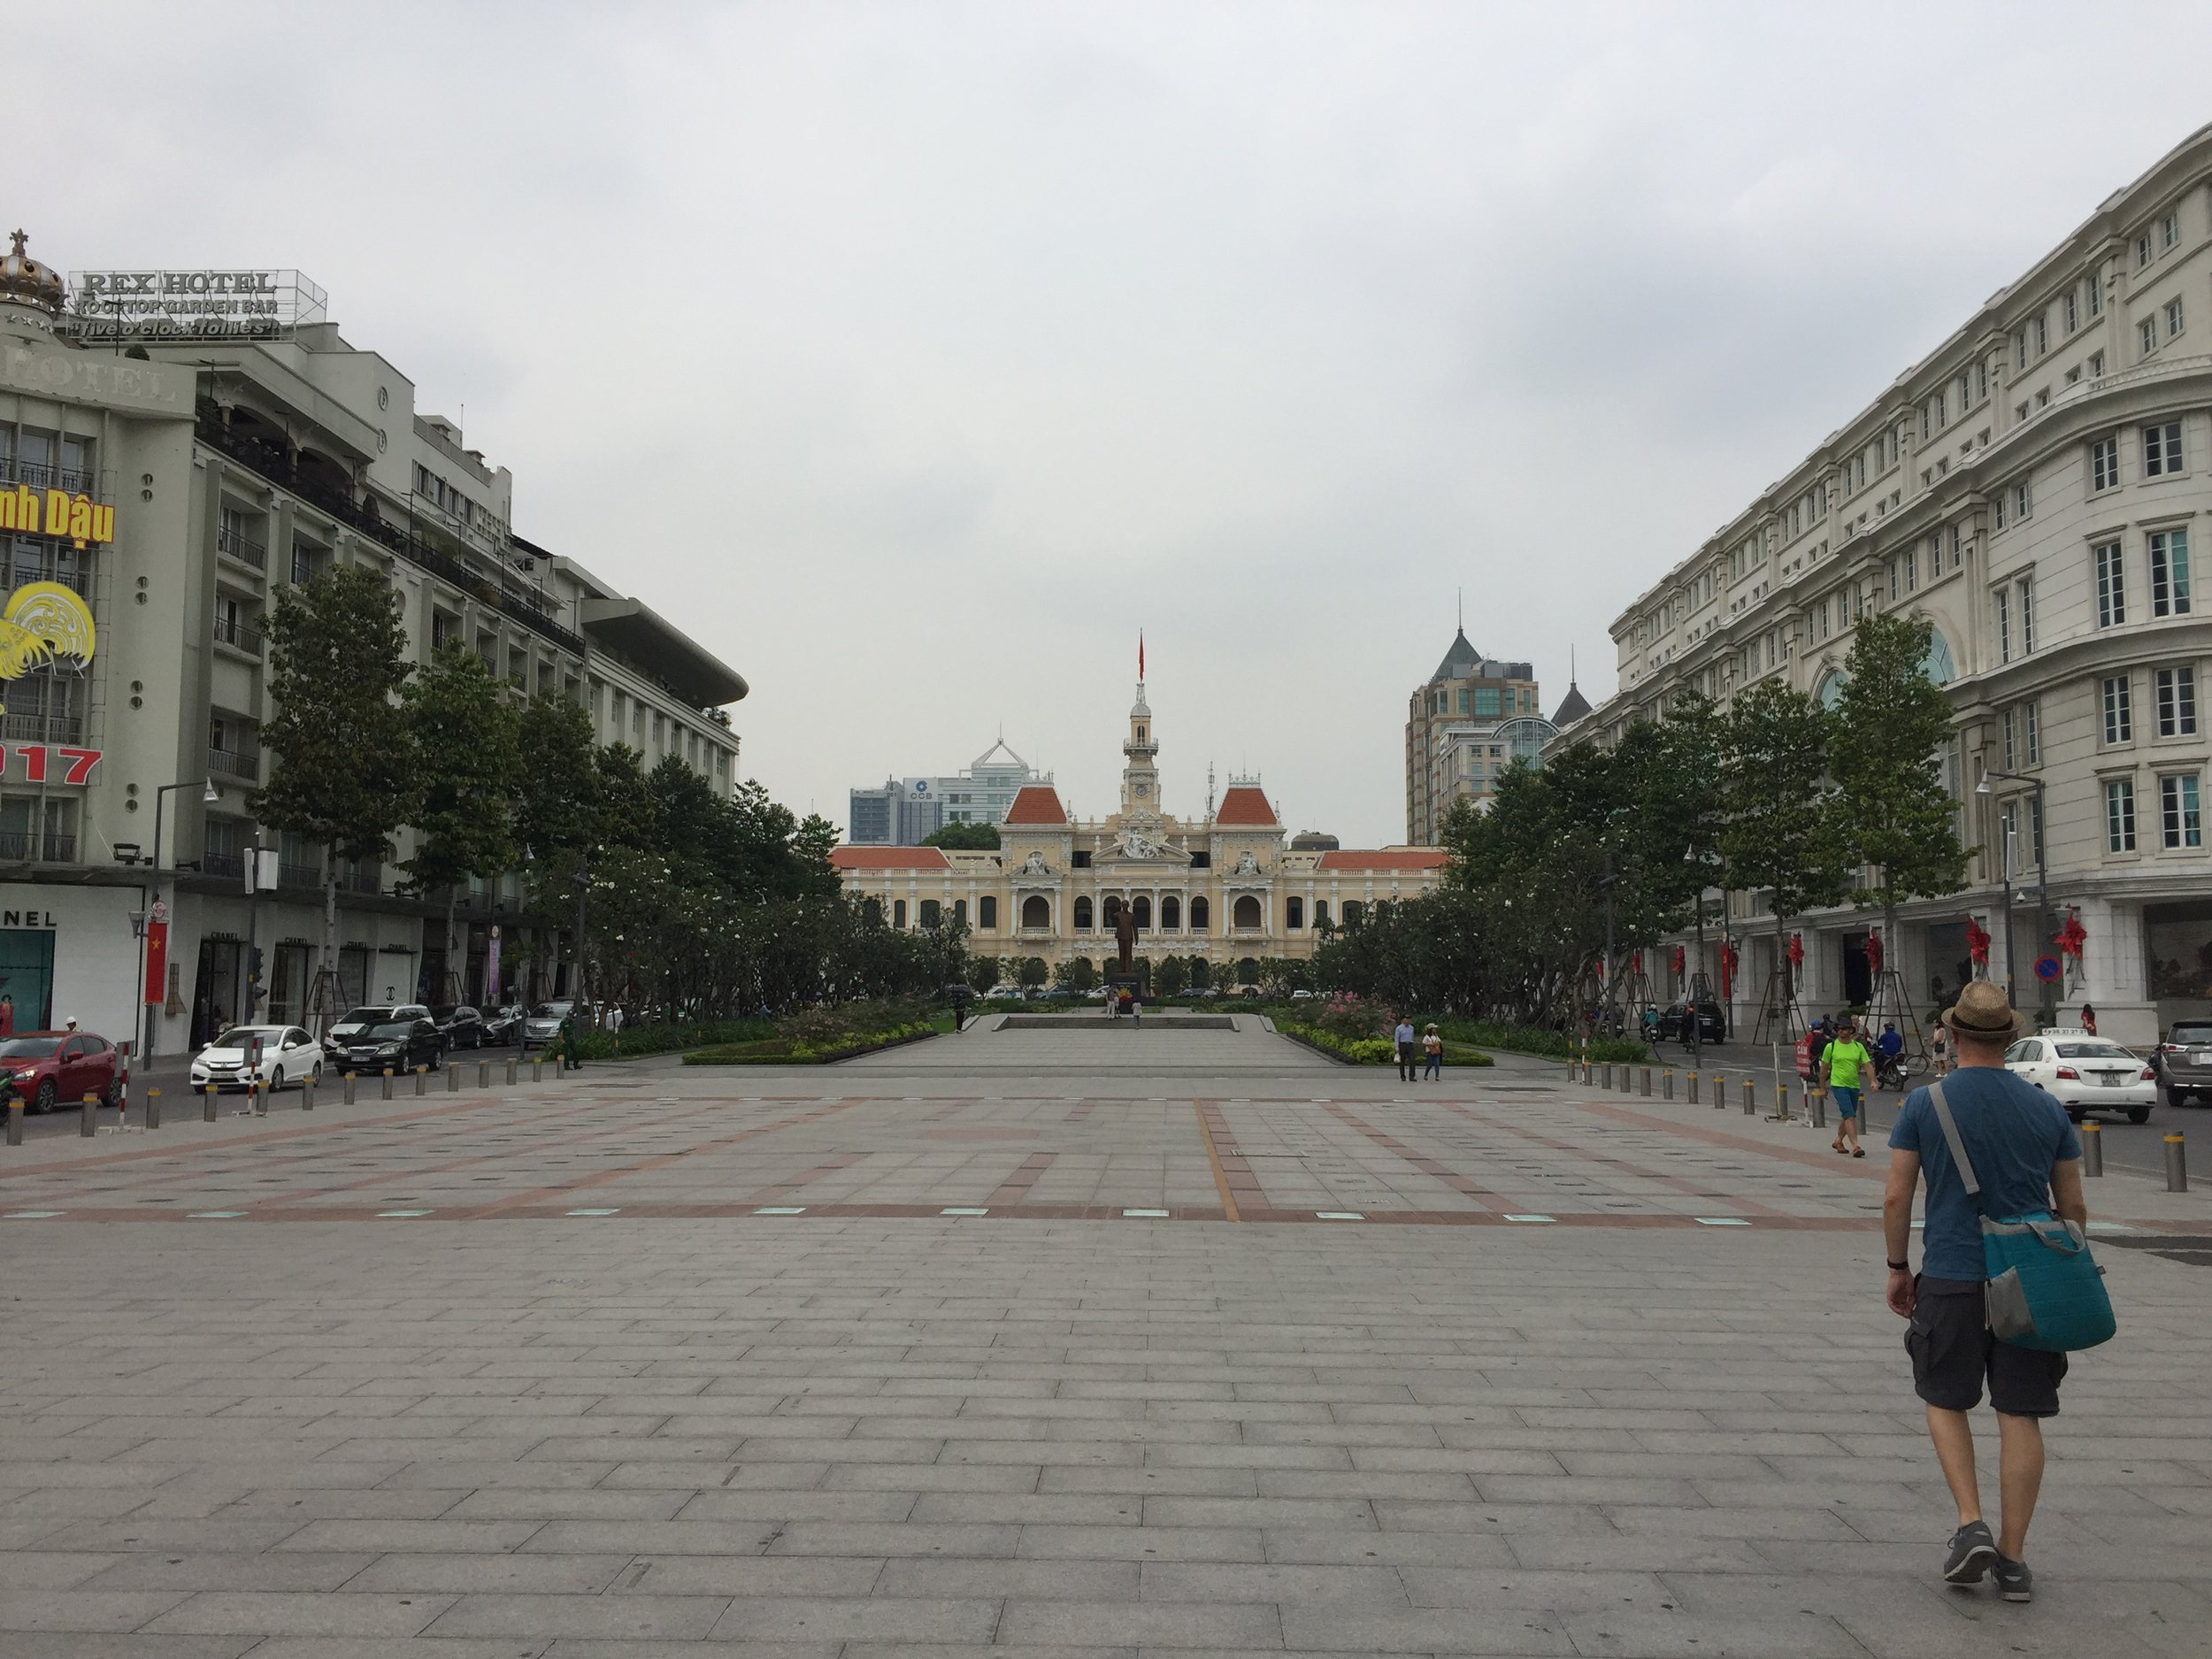 Ho Chi Minh City Hall, at the end of Nguyễn Huệ pedestrian boulevard, named for an 18th-century emperor.